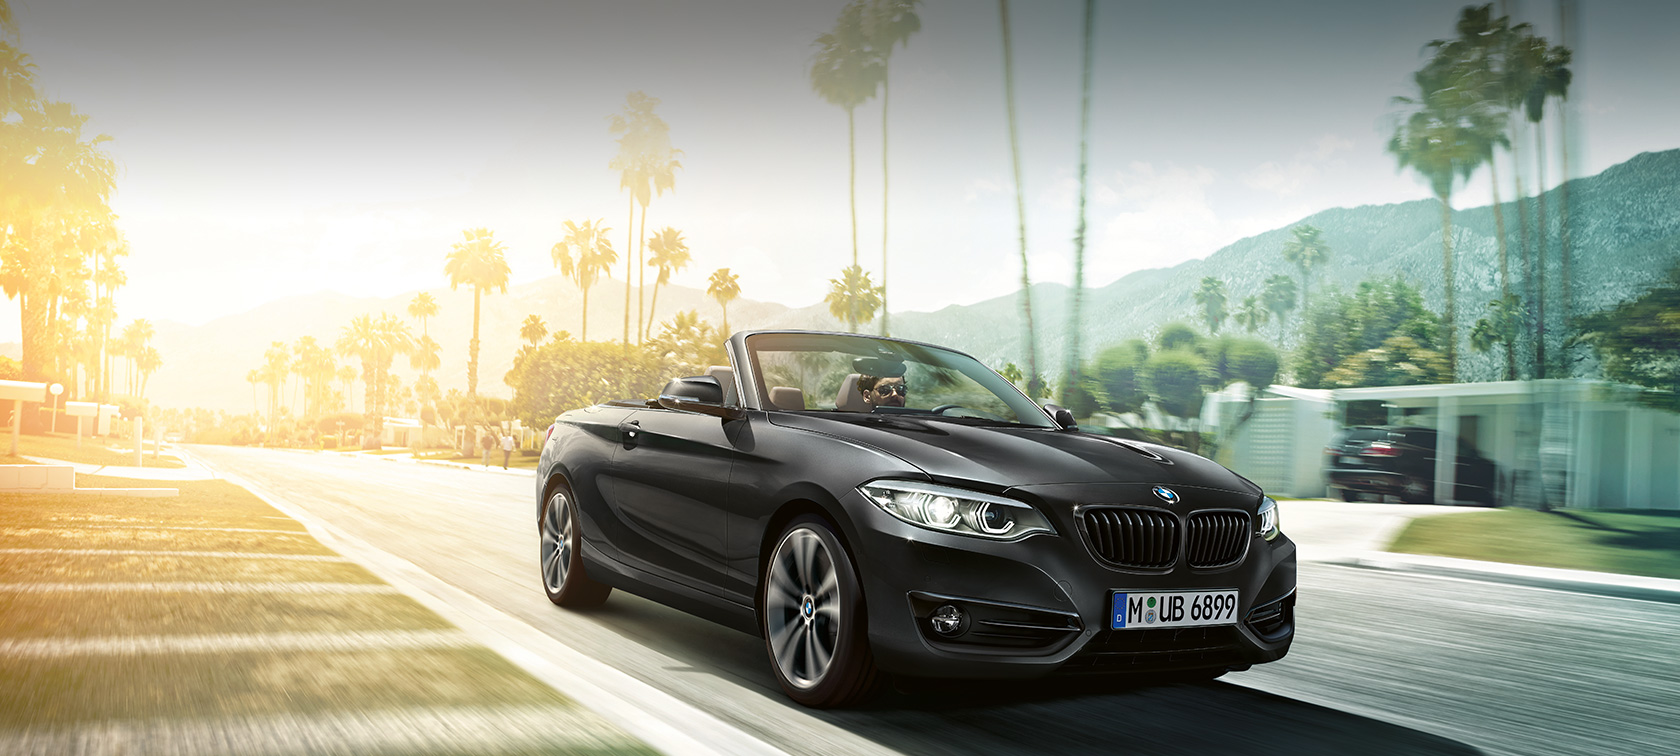 BMW Serie 2 Cabrio, ripresa in movimento F23